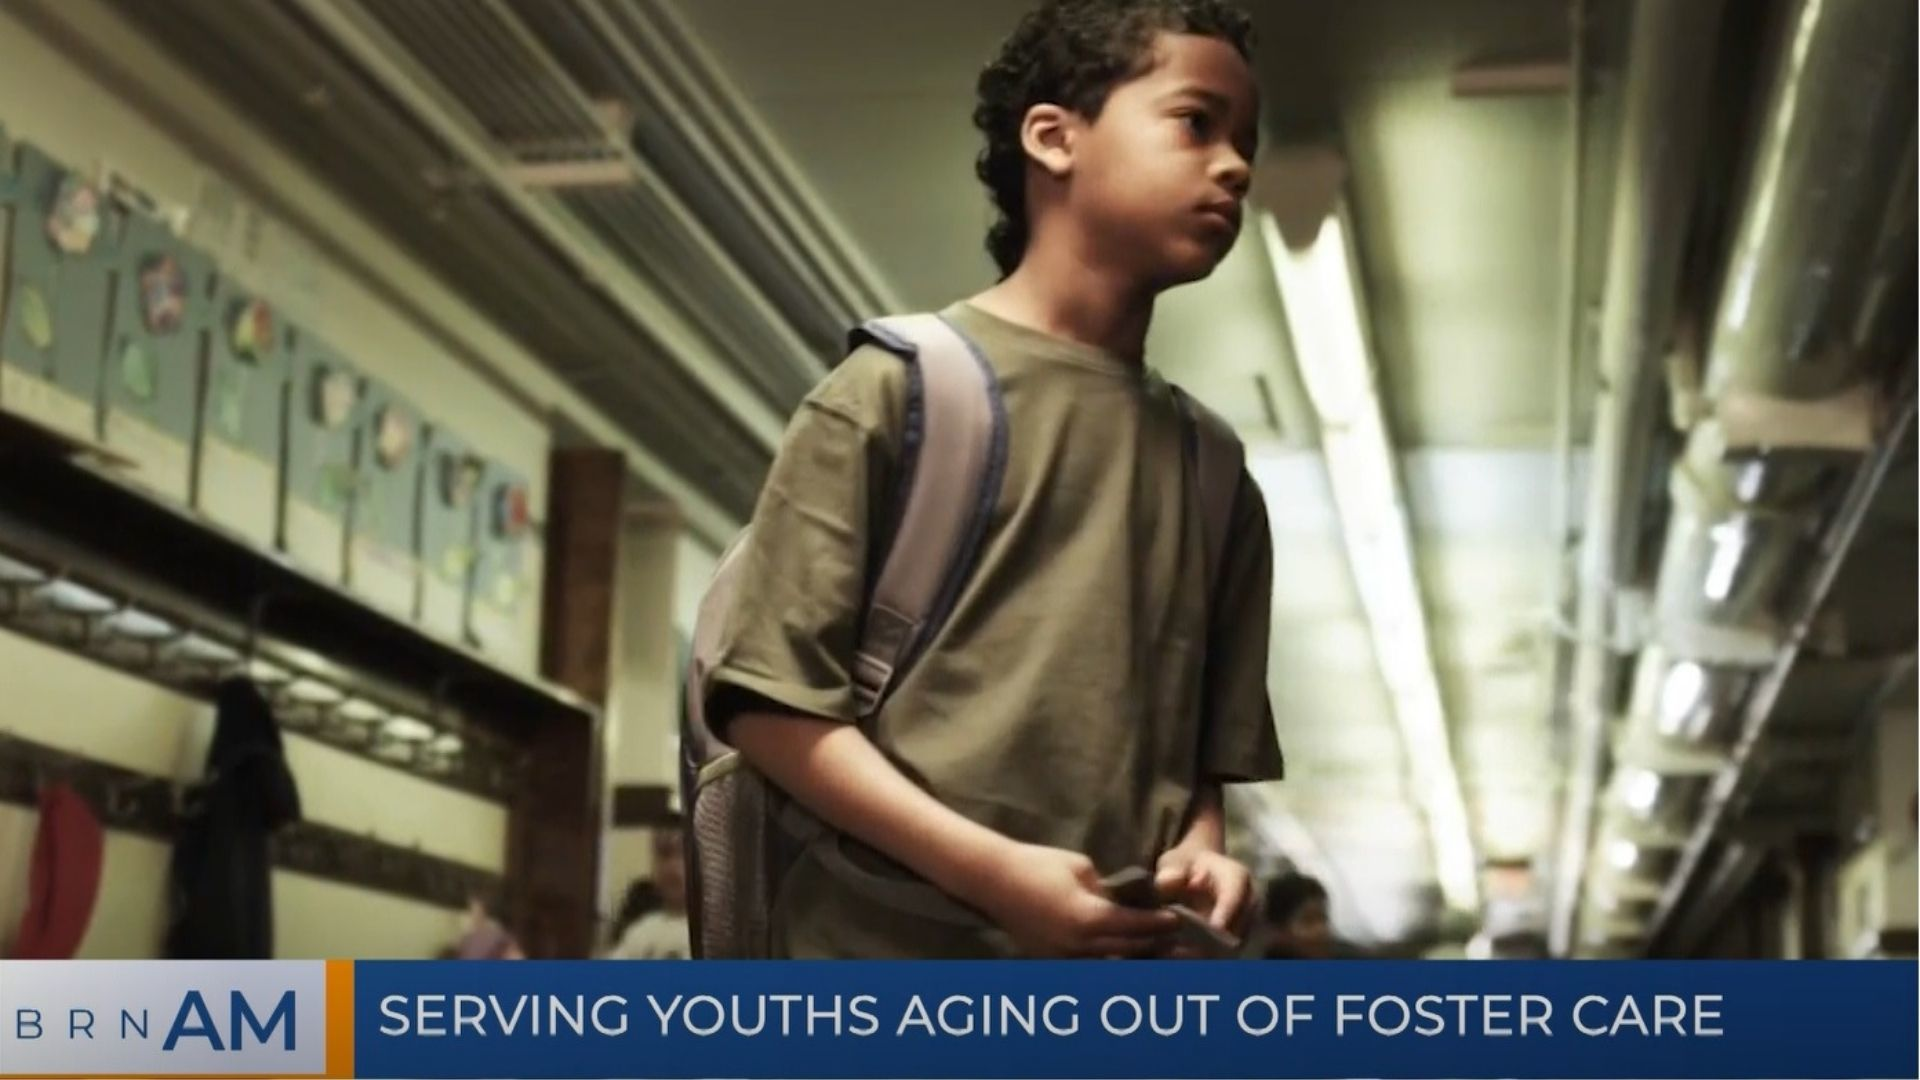 BRN AM   Serving youths aging out of foster care